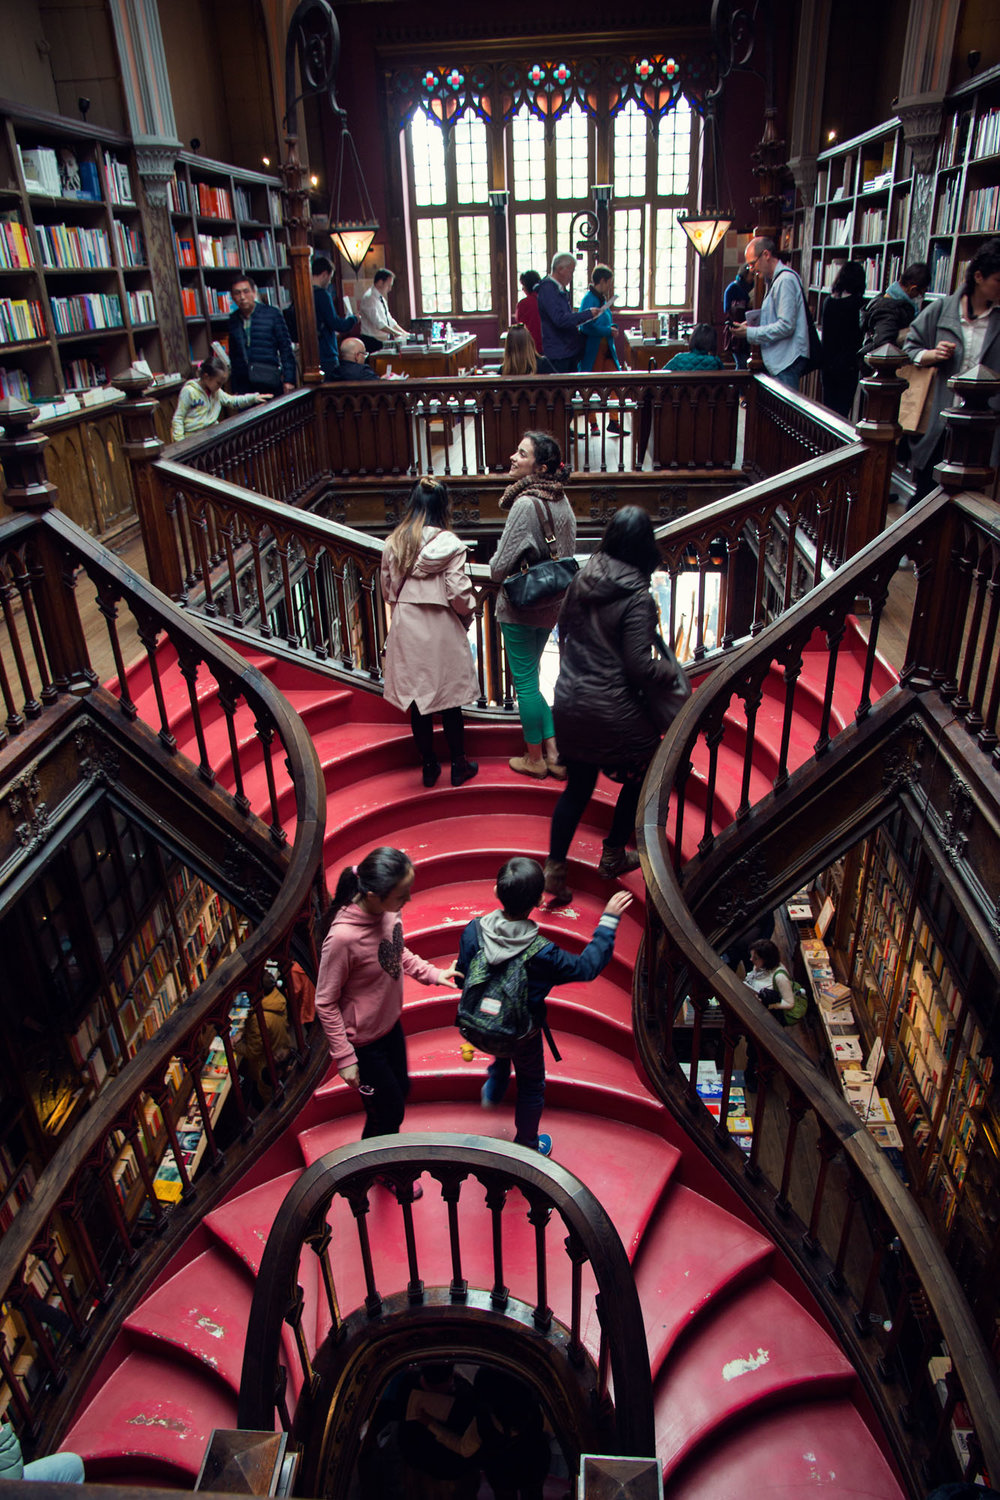 The famous red staircase in Livraria Lello bookstore.